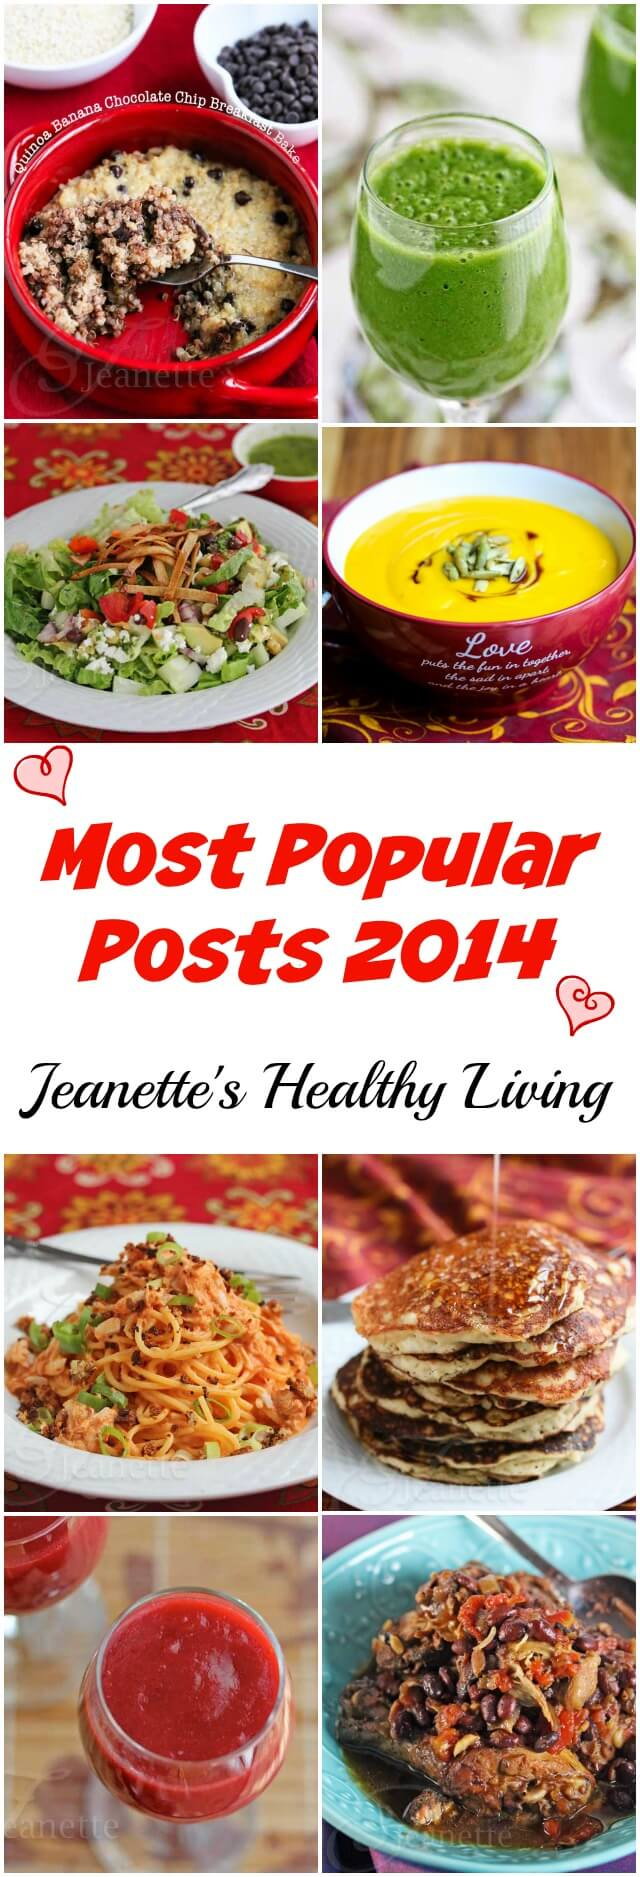 Most Popular Posts 2014  - these are the most sought after posts by readers on Jeanette's Healthy Living